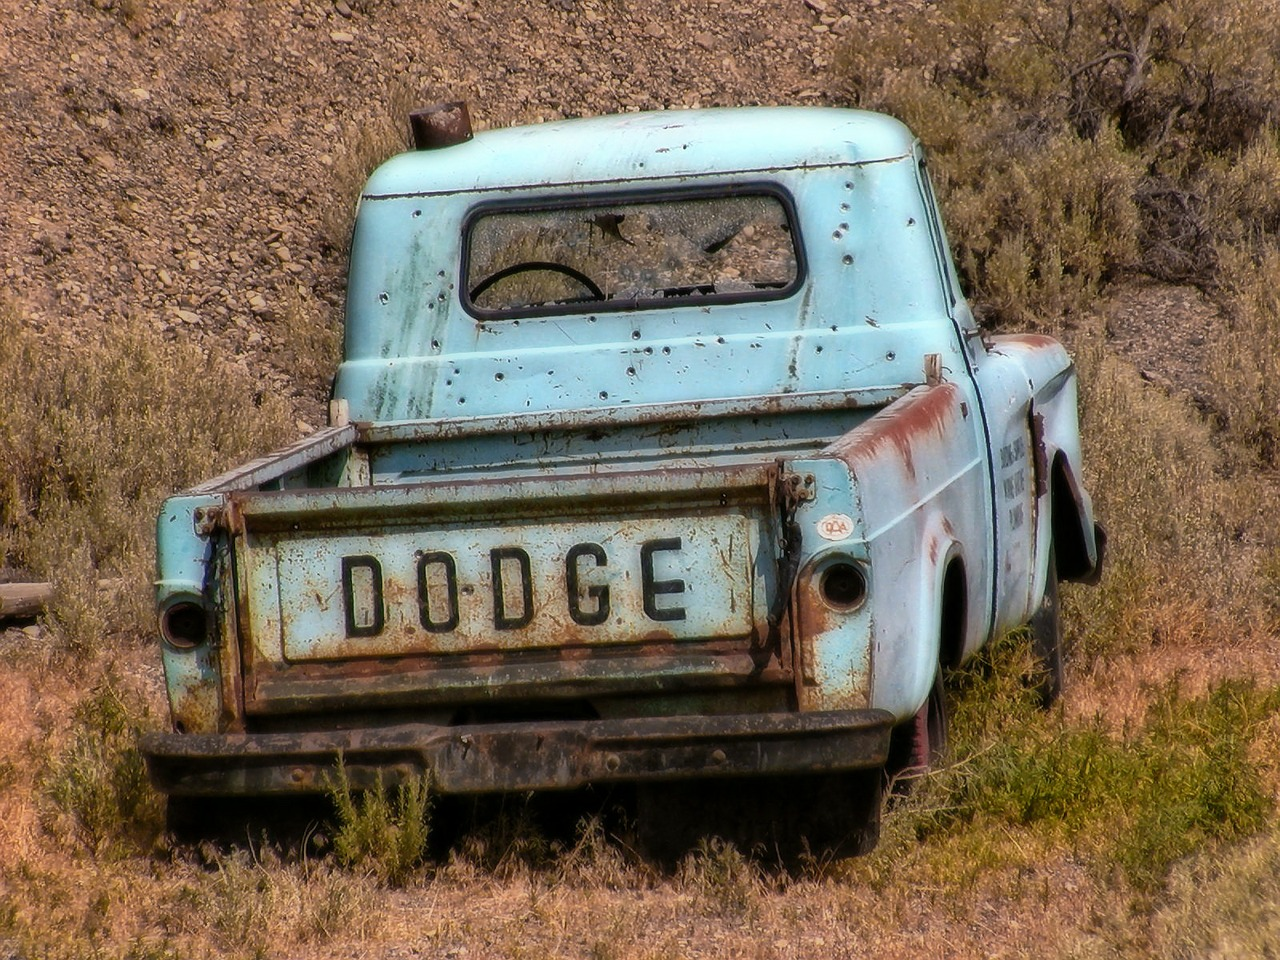 forgotten,old,truck,dodge,blue,rusty,automobile,car vehicle,free pictures, free photos, free images, royalty free, free illustrations, public domain